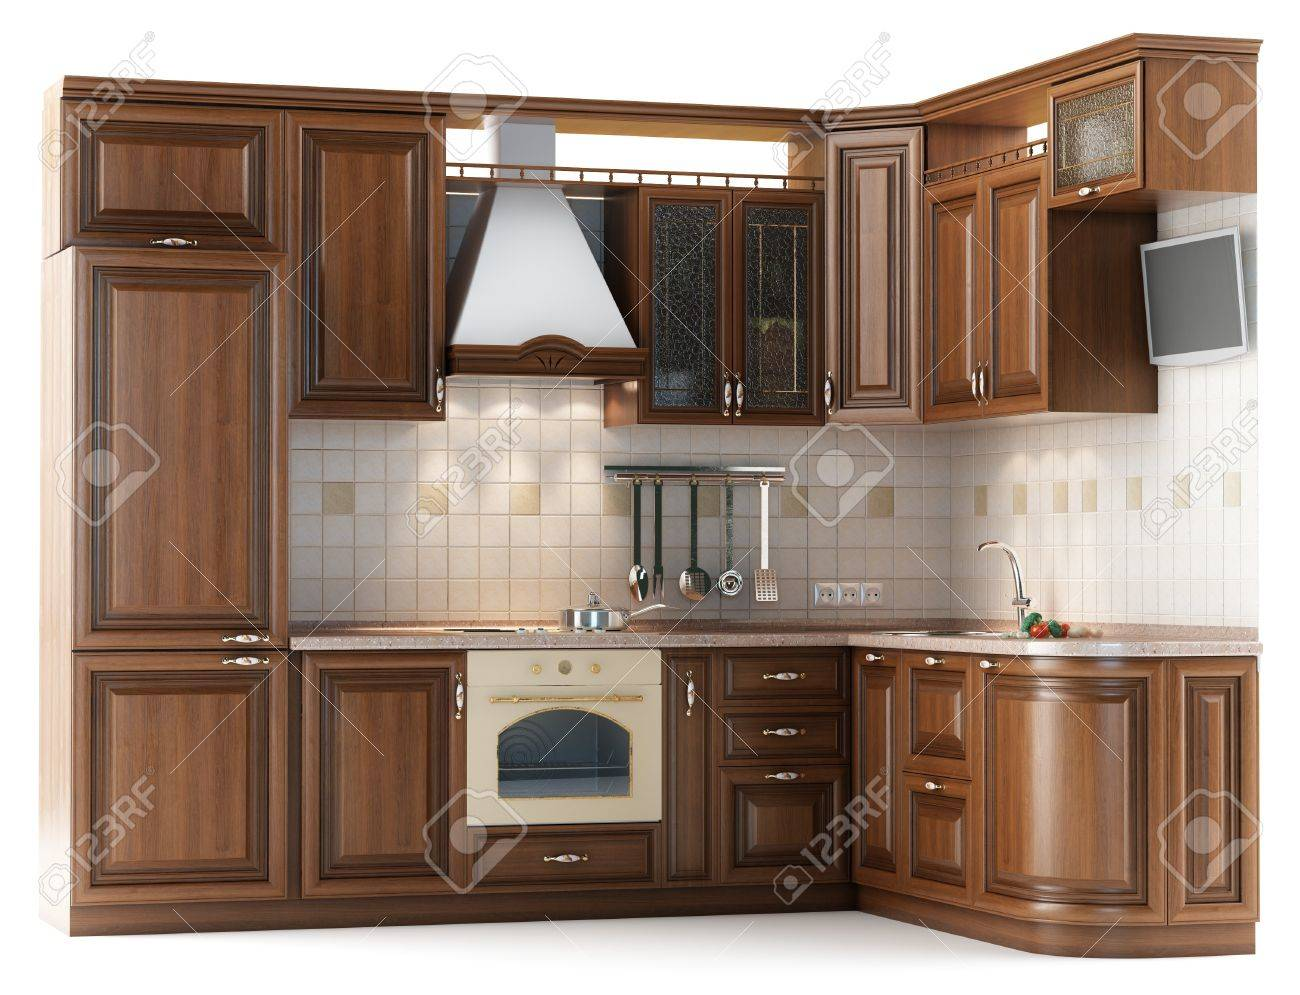 kitchen furniture pantry cabinet plans beautiful made of wood in the studio lightingisolated on white stock photo 13646151